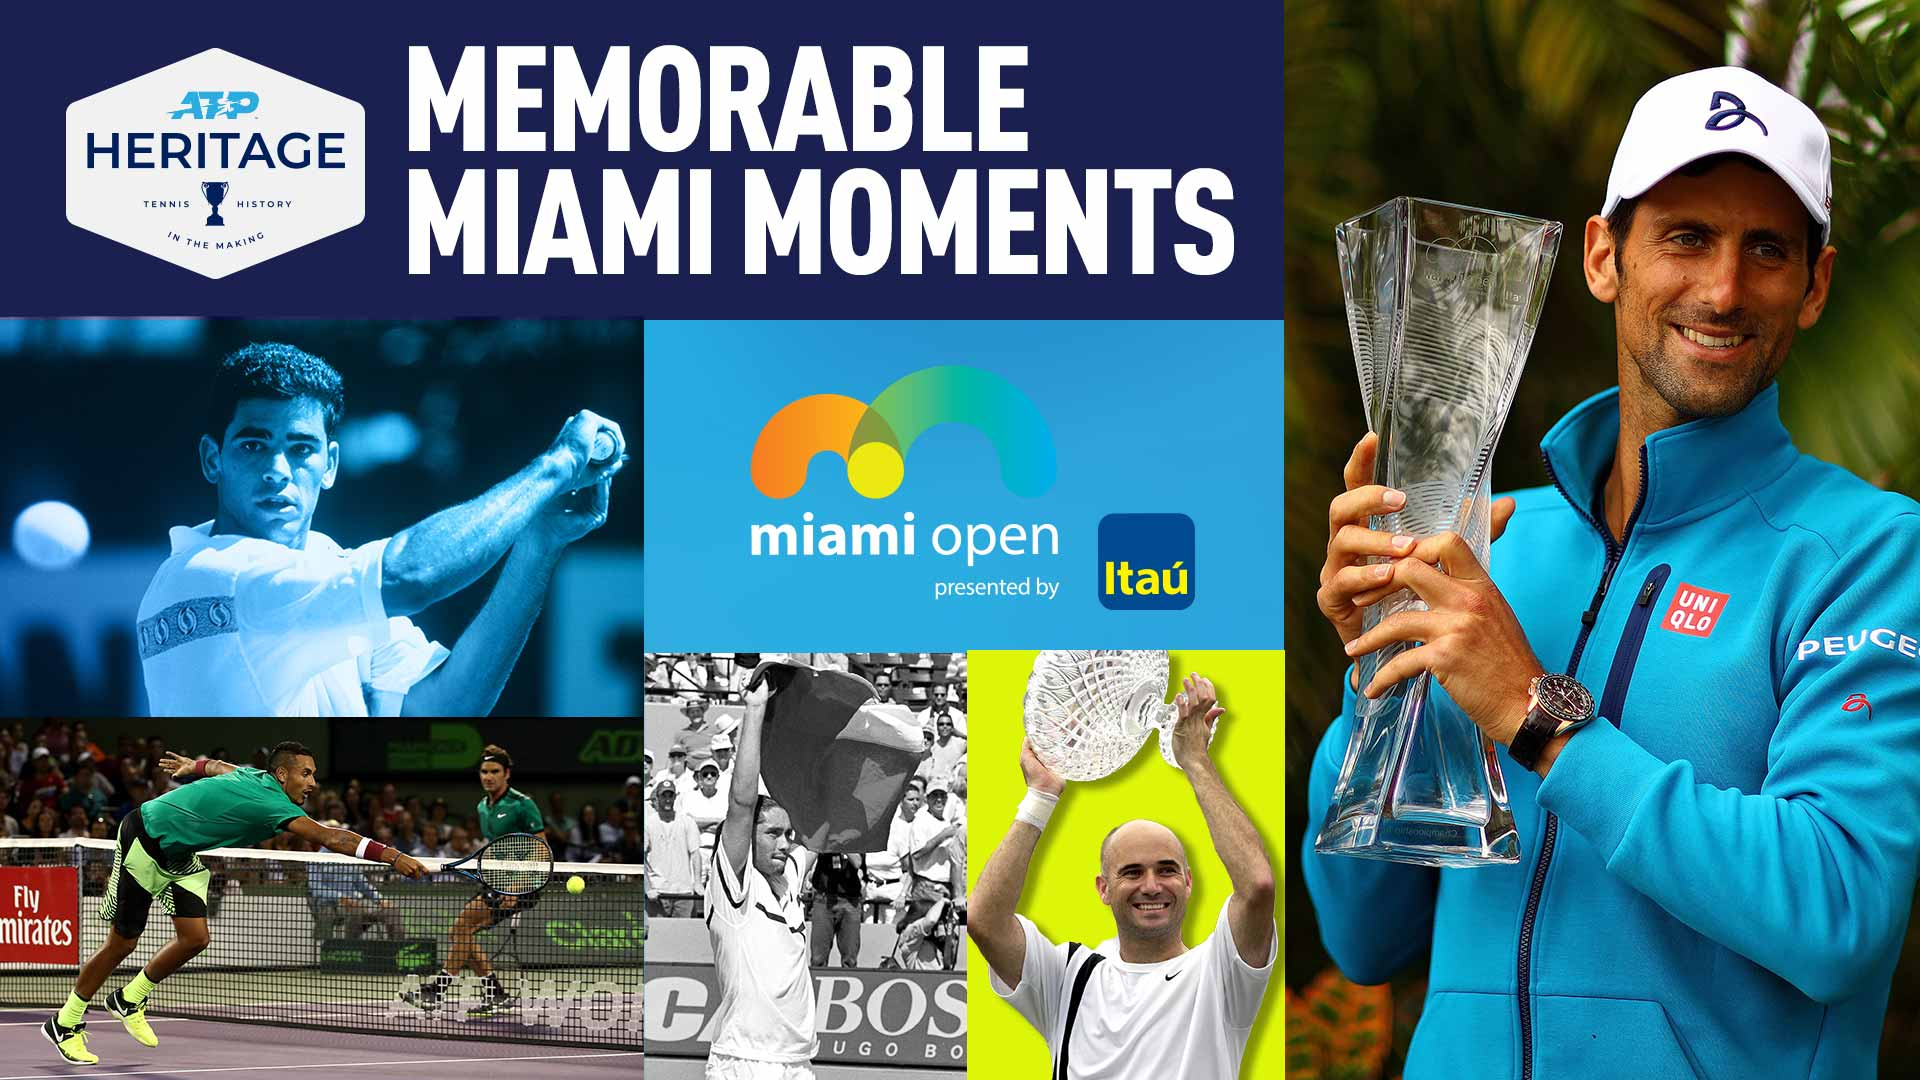 Memorable Miami moments